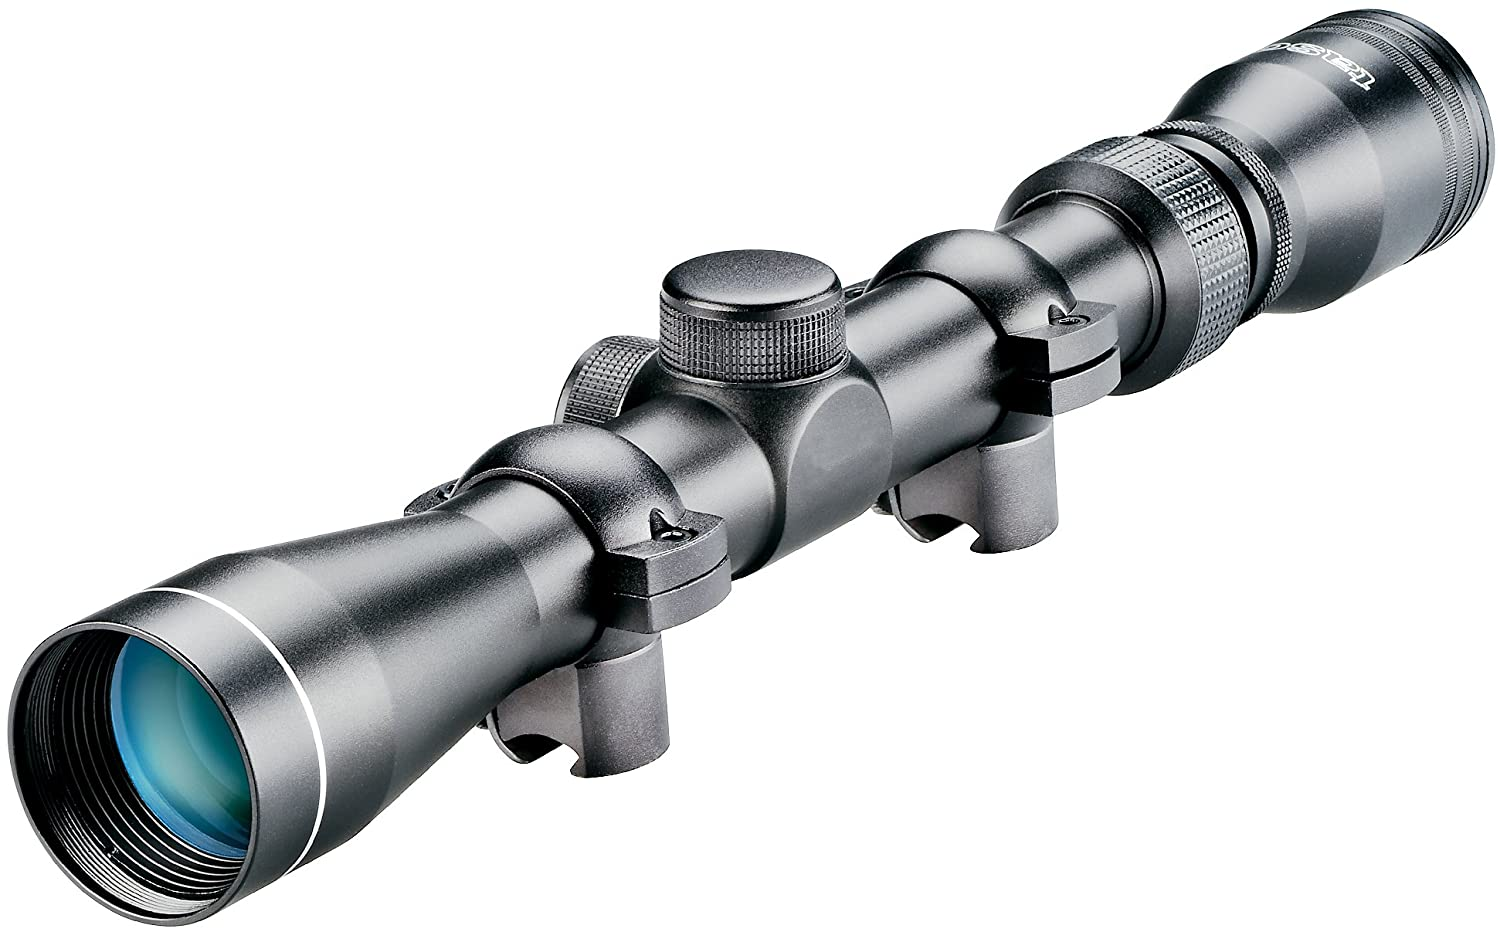 3. TASCO MAG39X32D Rimfire Series 3-9x 32mm 30/30 Reticle .22 Riflescope (Matte Finish)